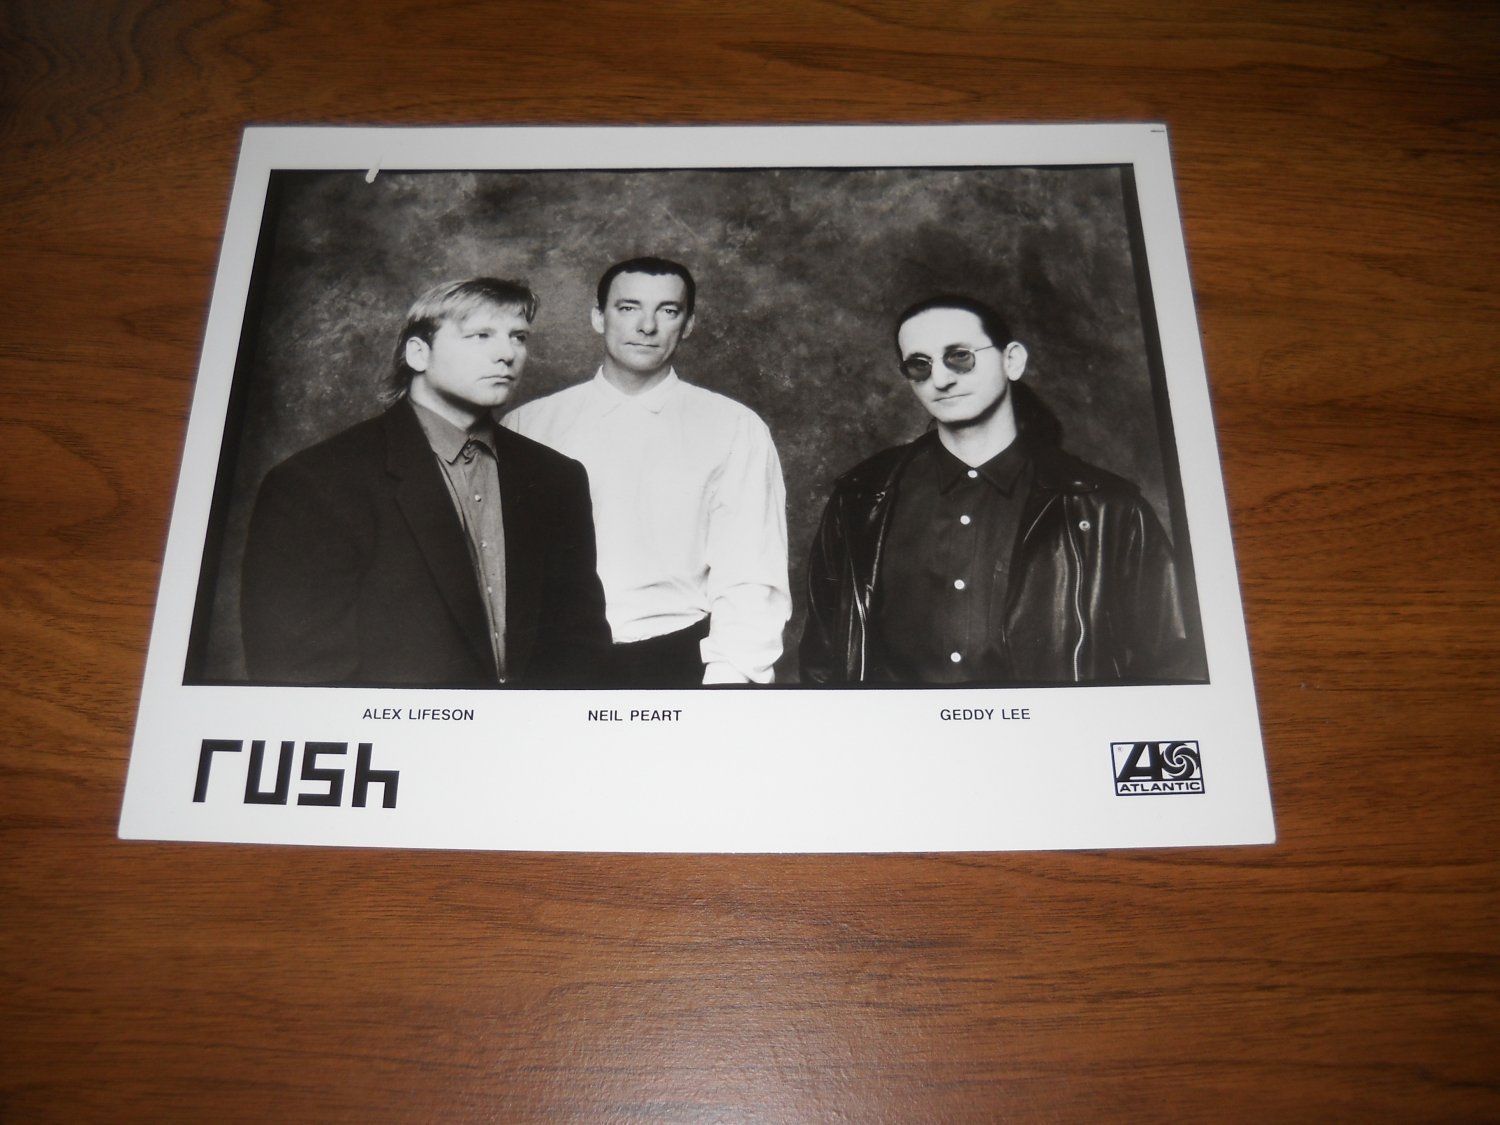 Rush - Roll The Bones - Press Kit Photo - b/w - 8x10 - Glossy